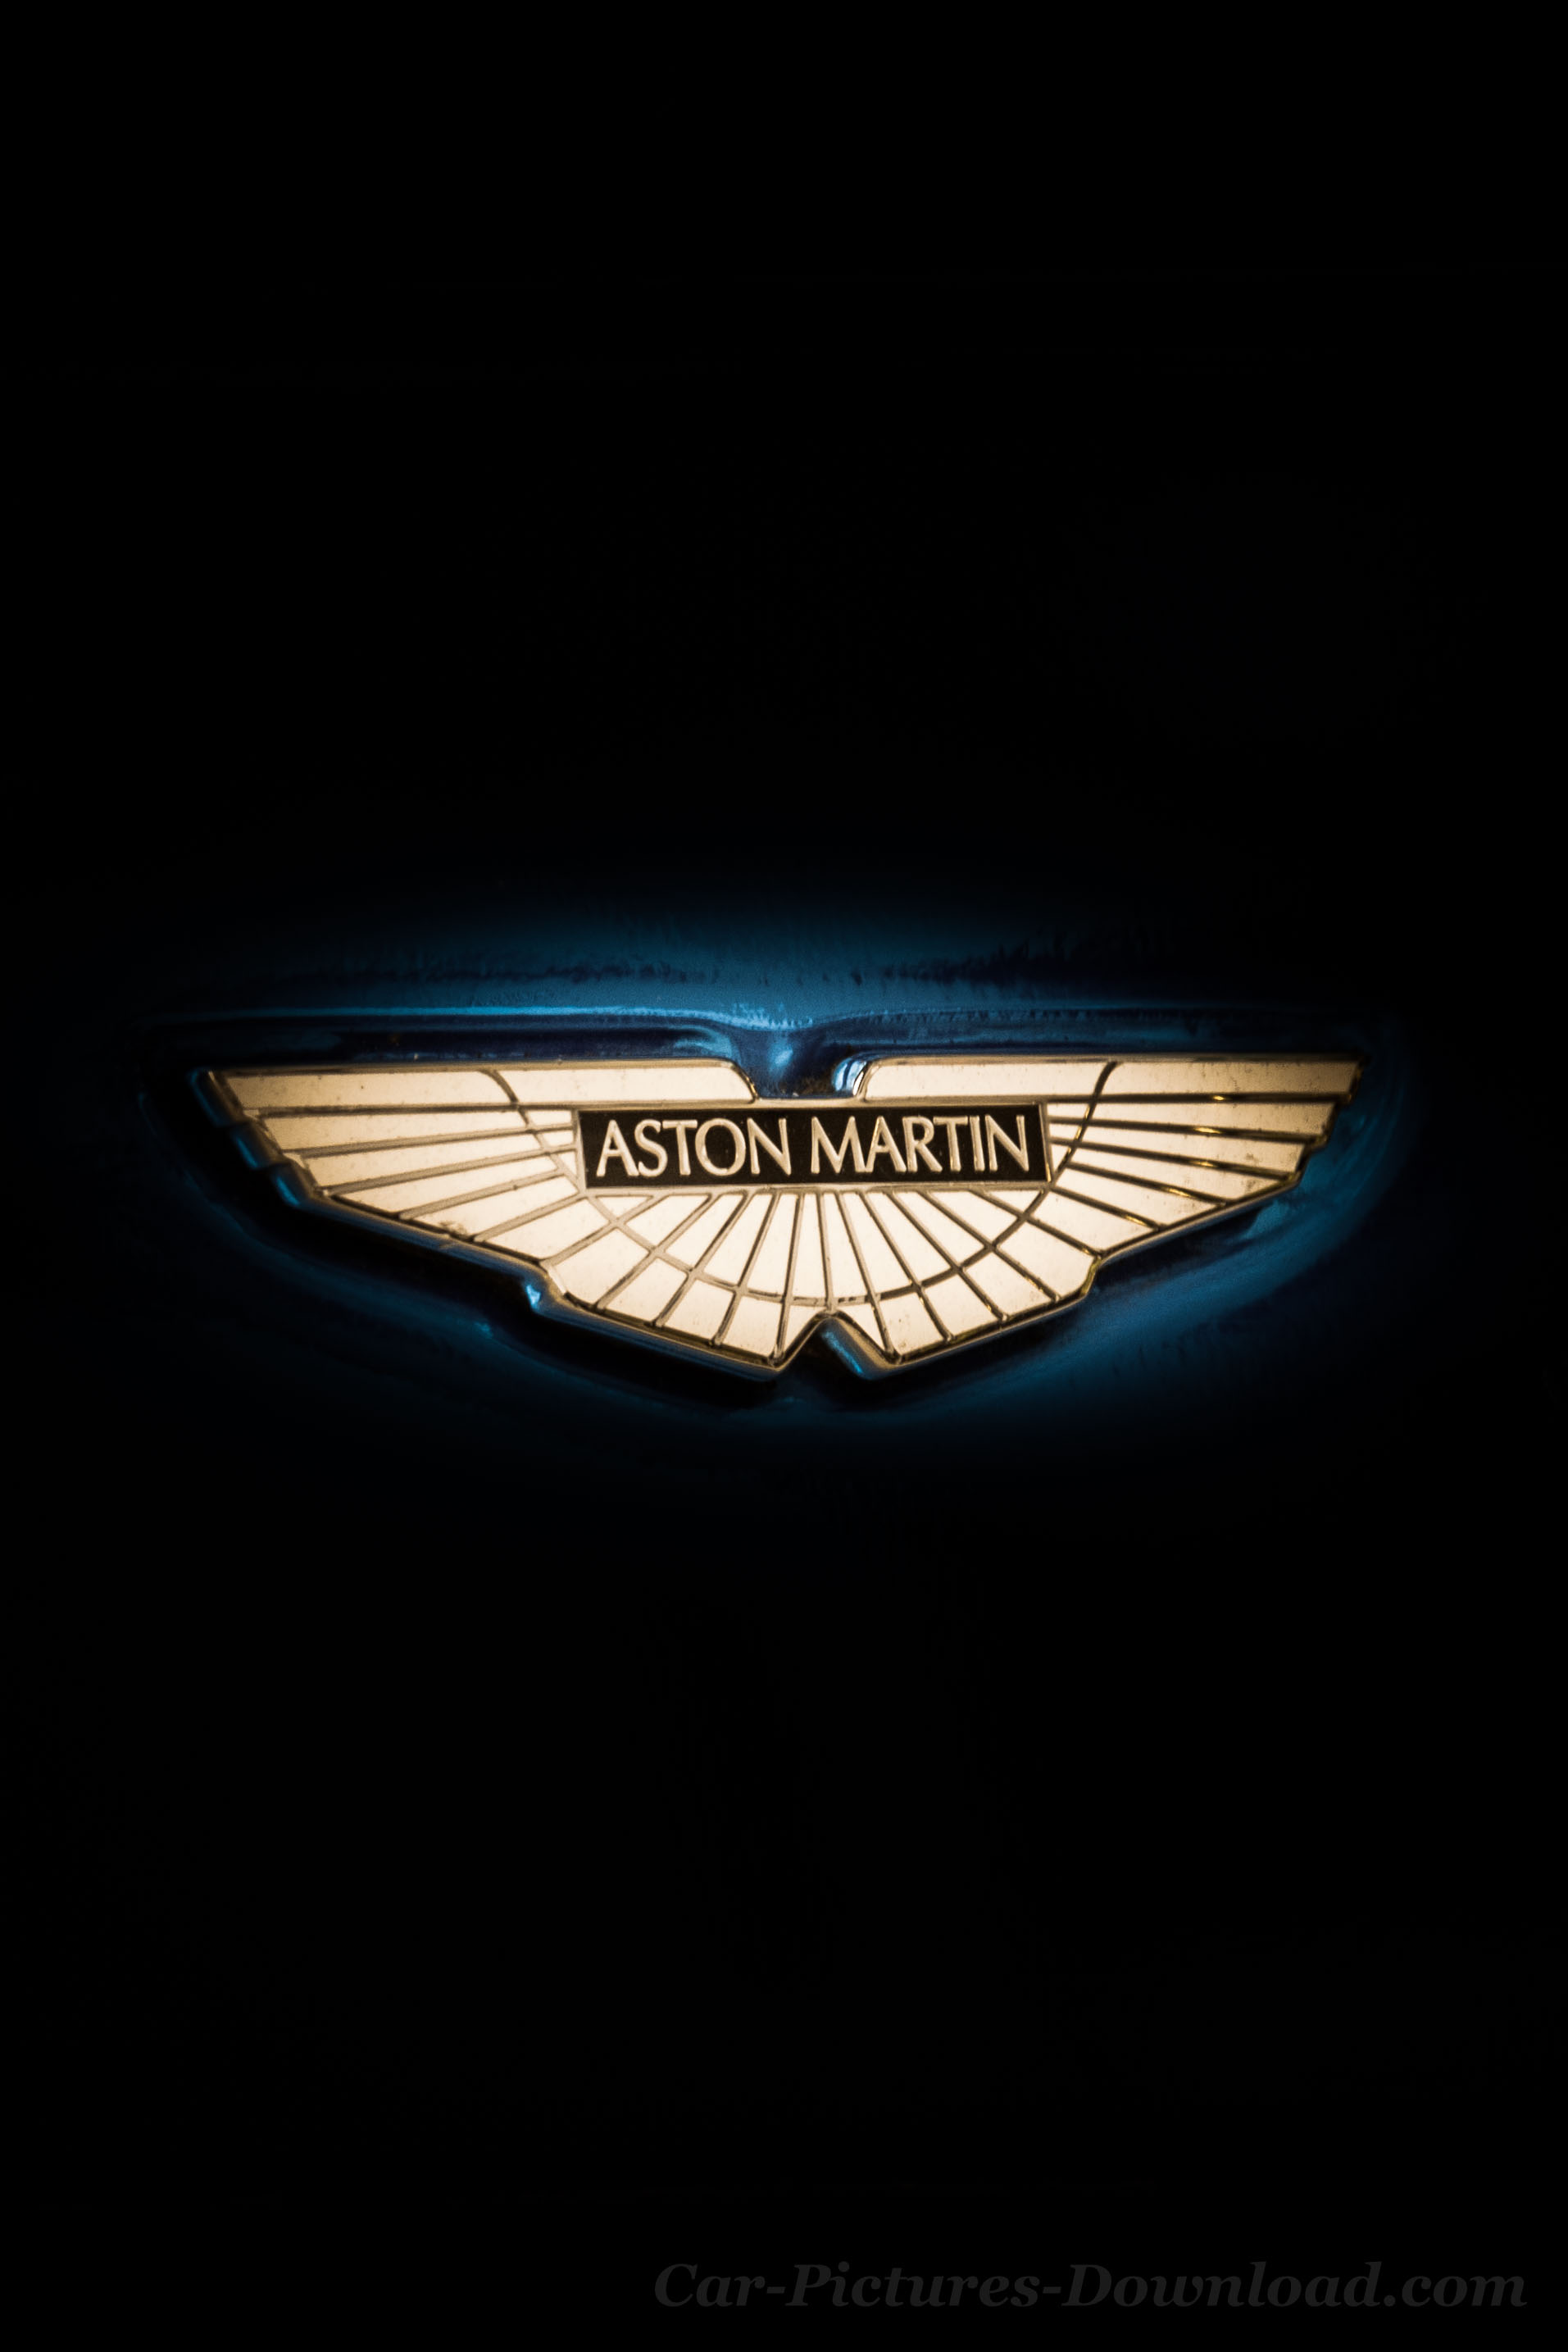 Aston Martin Wallpapers For PC Mobile   To Download HD Images 1913x2869